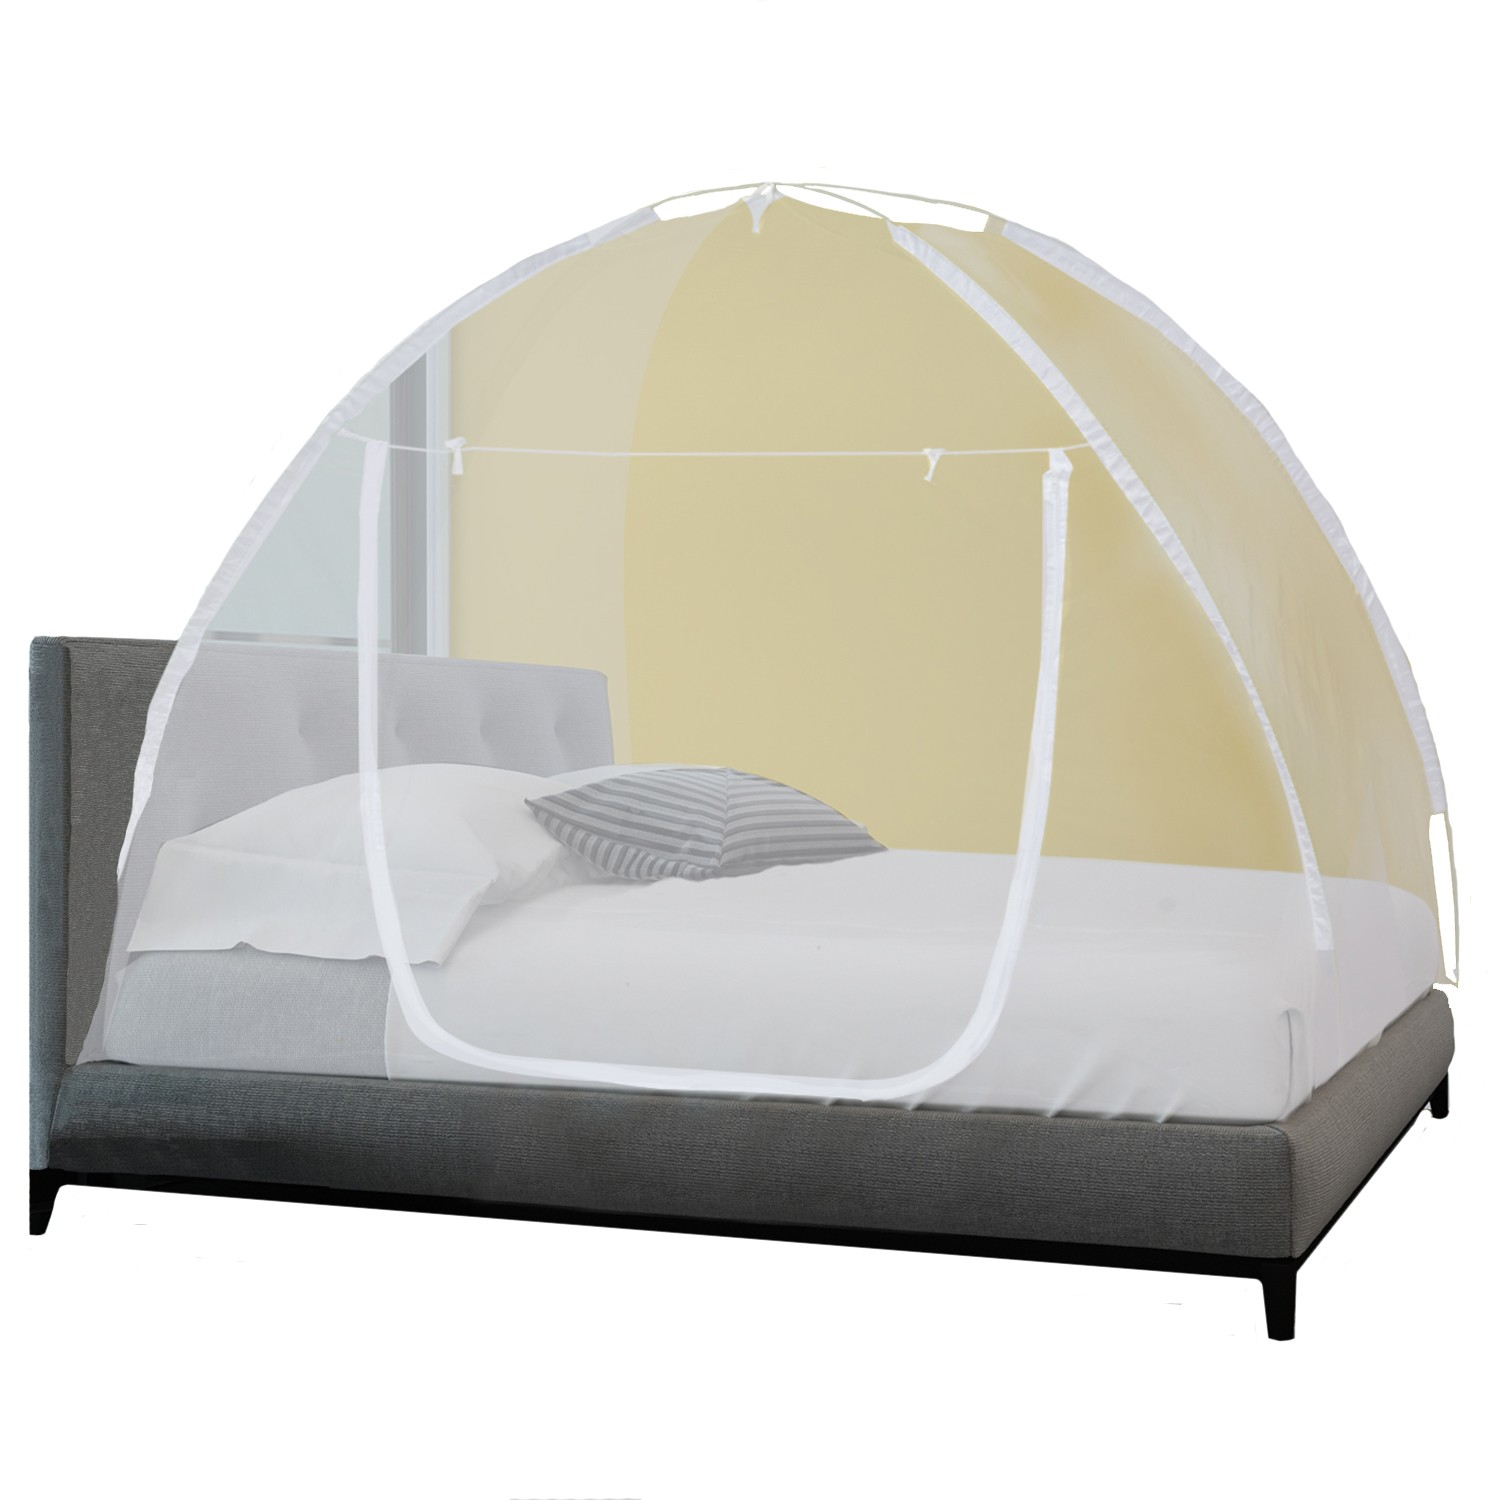 Moustiquaire Dome Pop Up 190 X 125 Cm Mobile Pour Lit Anti Moustiq